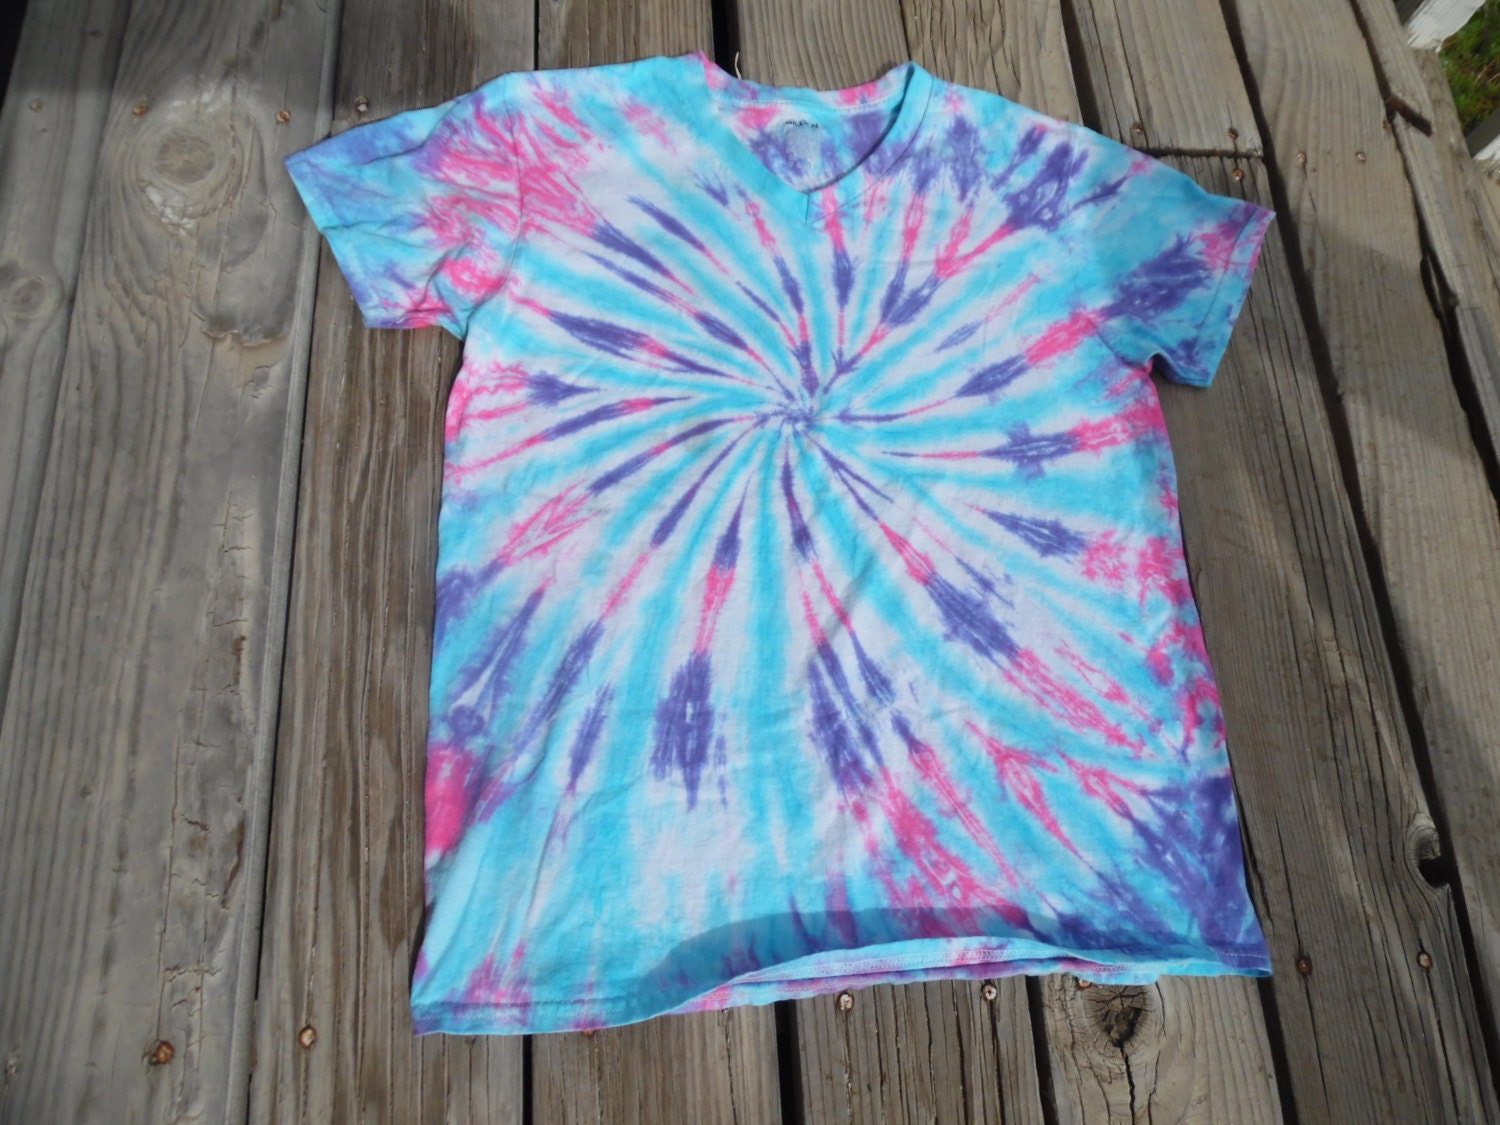 tie dye shirt made to order in blue purple pink and white. Black Bedroom Furniture Sets. Home Design Ideas